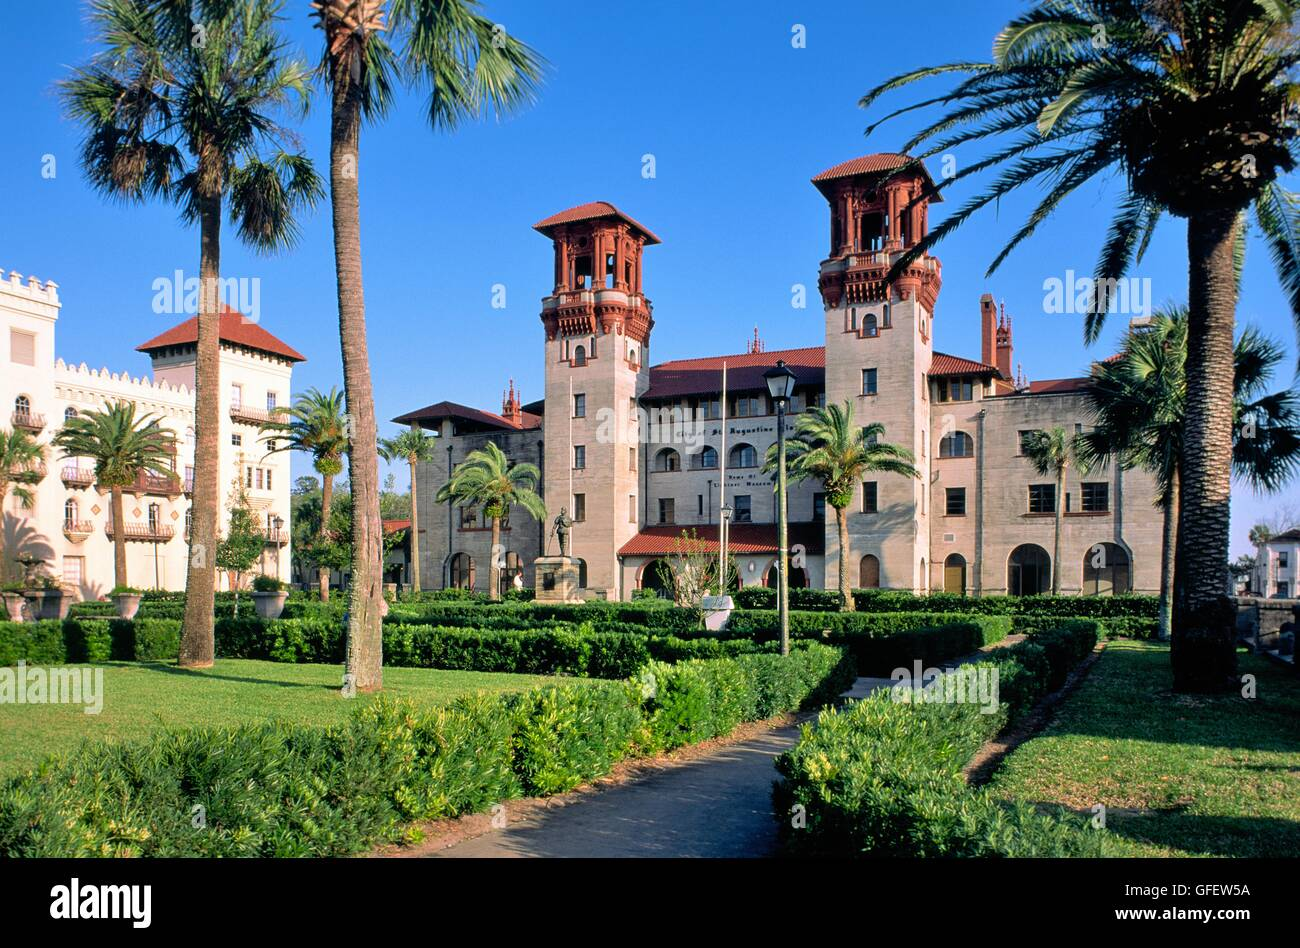 Lightner Museum Originally Hotel Alcazar In USA Oldest City Of - Oldest museums in usa